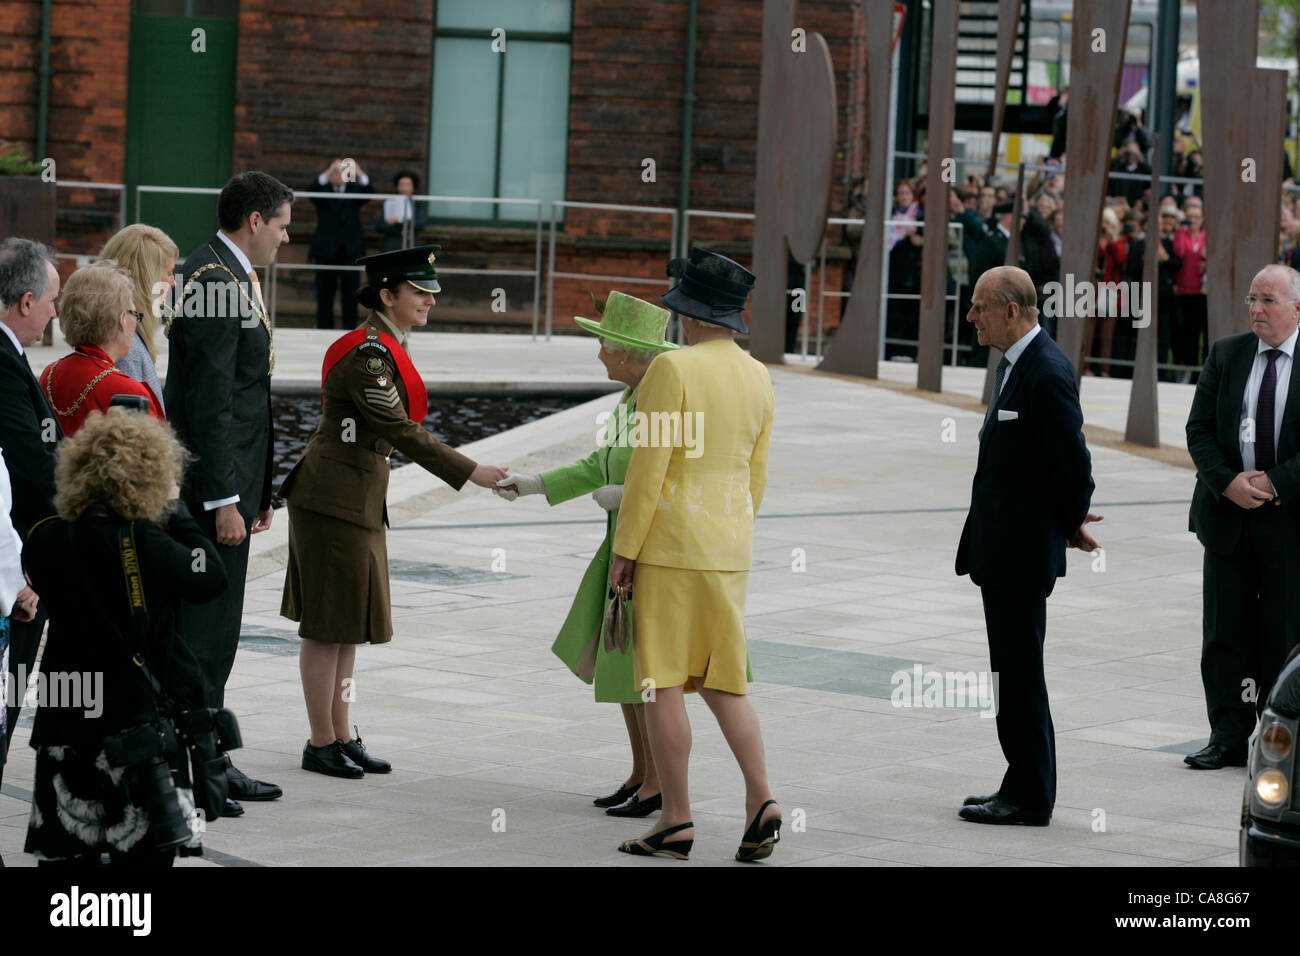 Her Majesty the Queen accompanied by Dame Mary Peters, is greeted by a Cadet at the Belfast Titanic building which - Stock Image